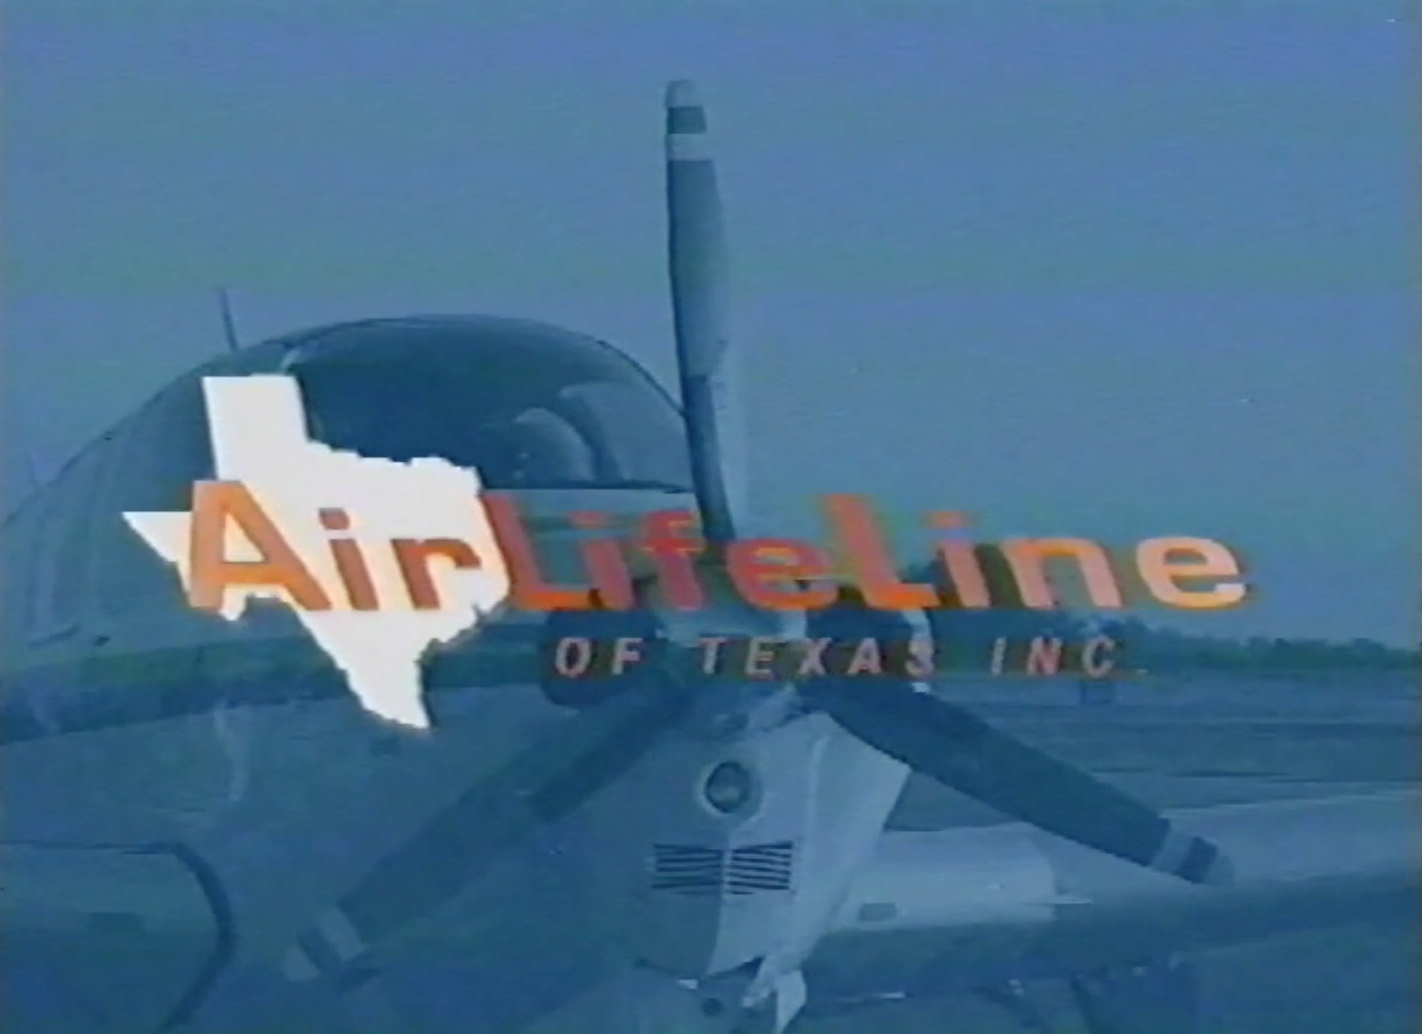 Airlifeline of Texas